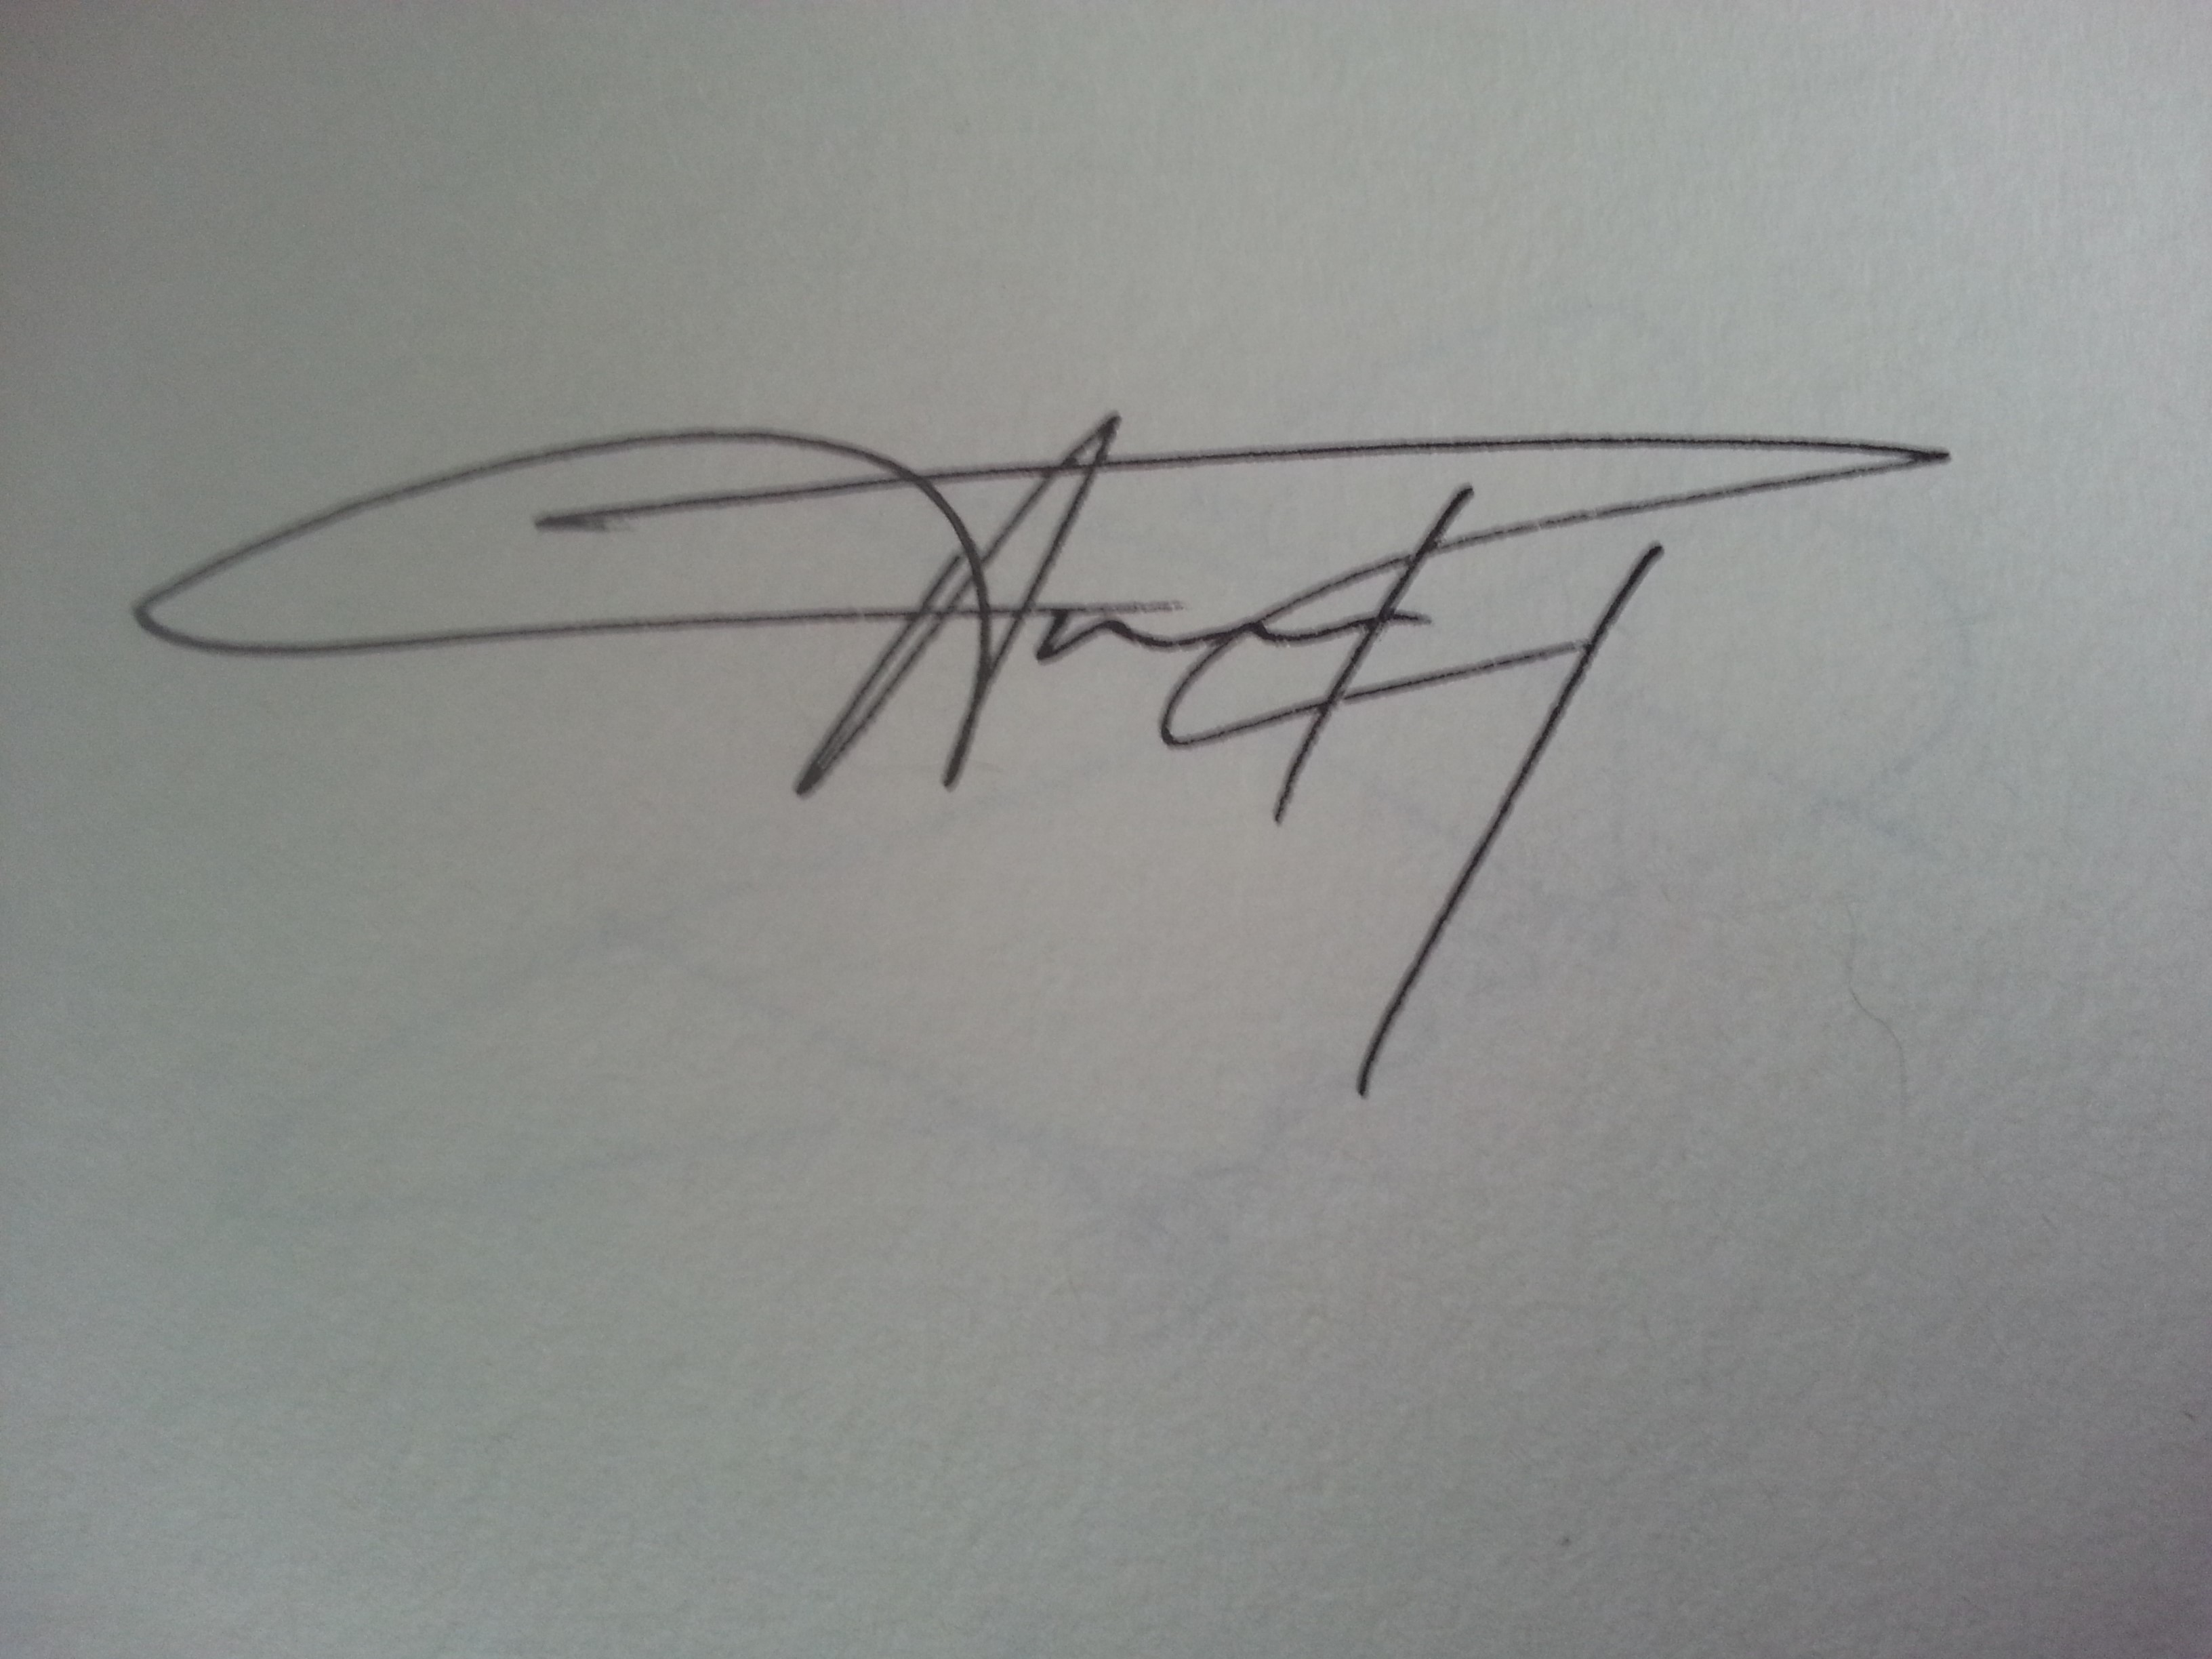 Angela's Artistic Collcetion's Signature